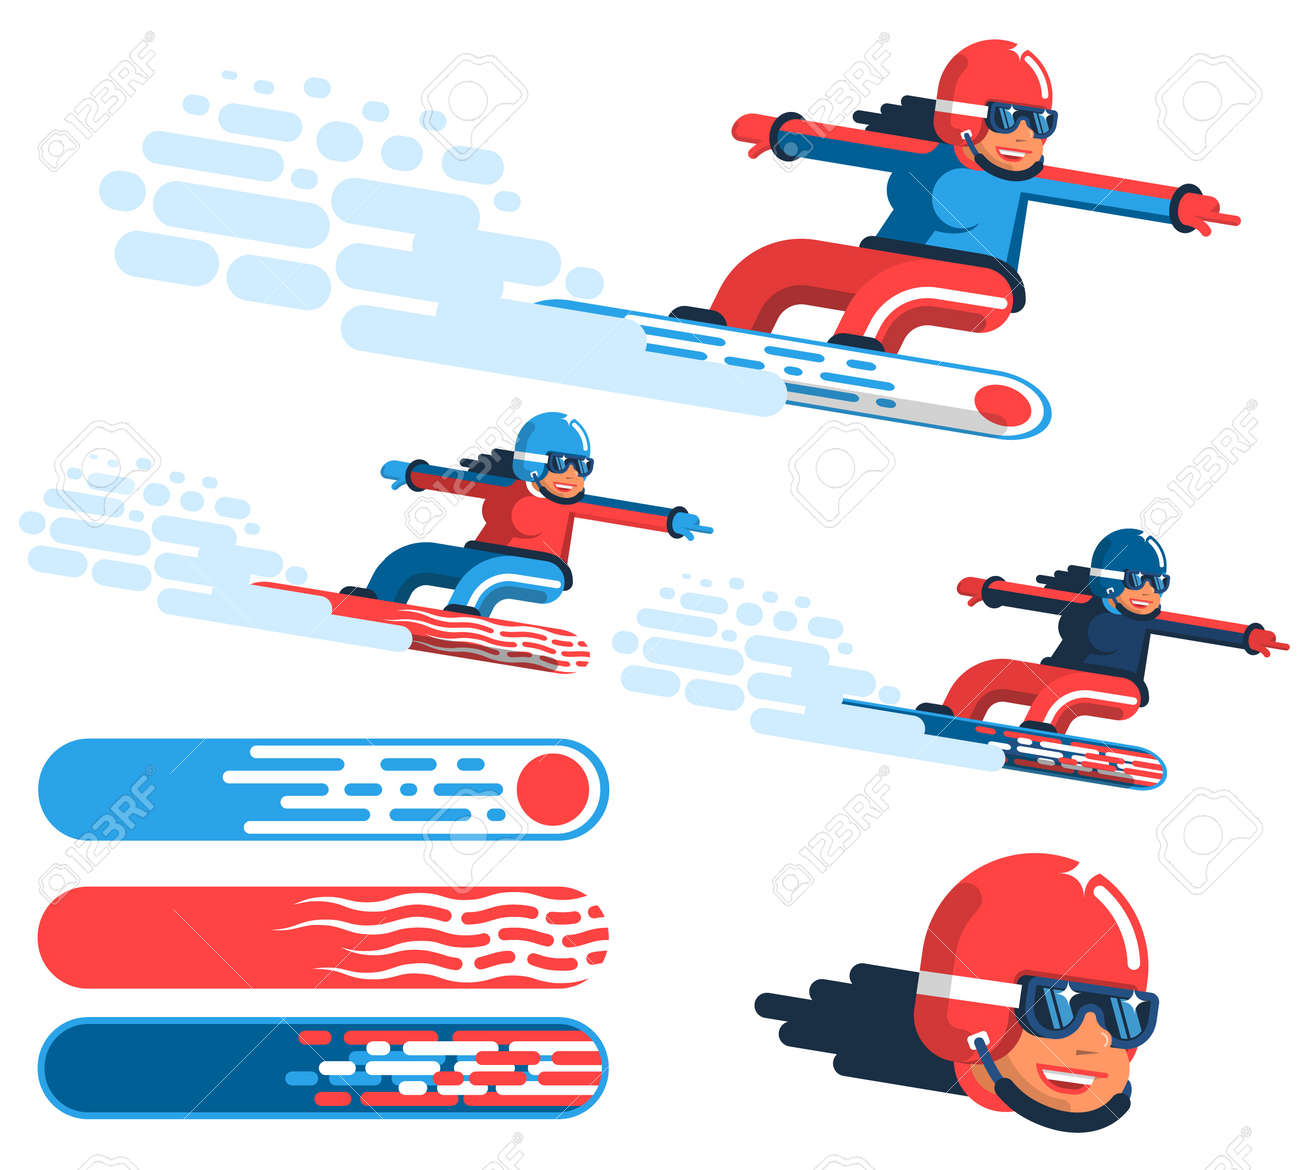 Girl snowboarder in motion - options in different outfits with drawings on the boards. - 94608744